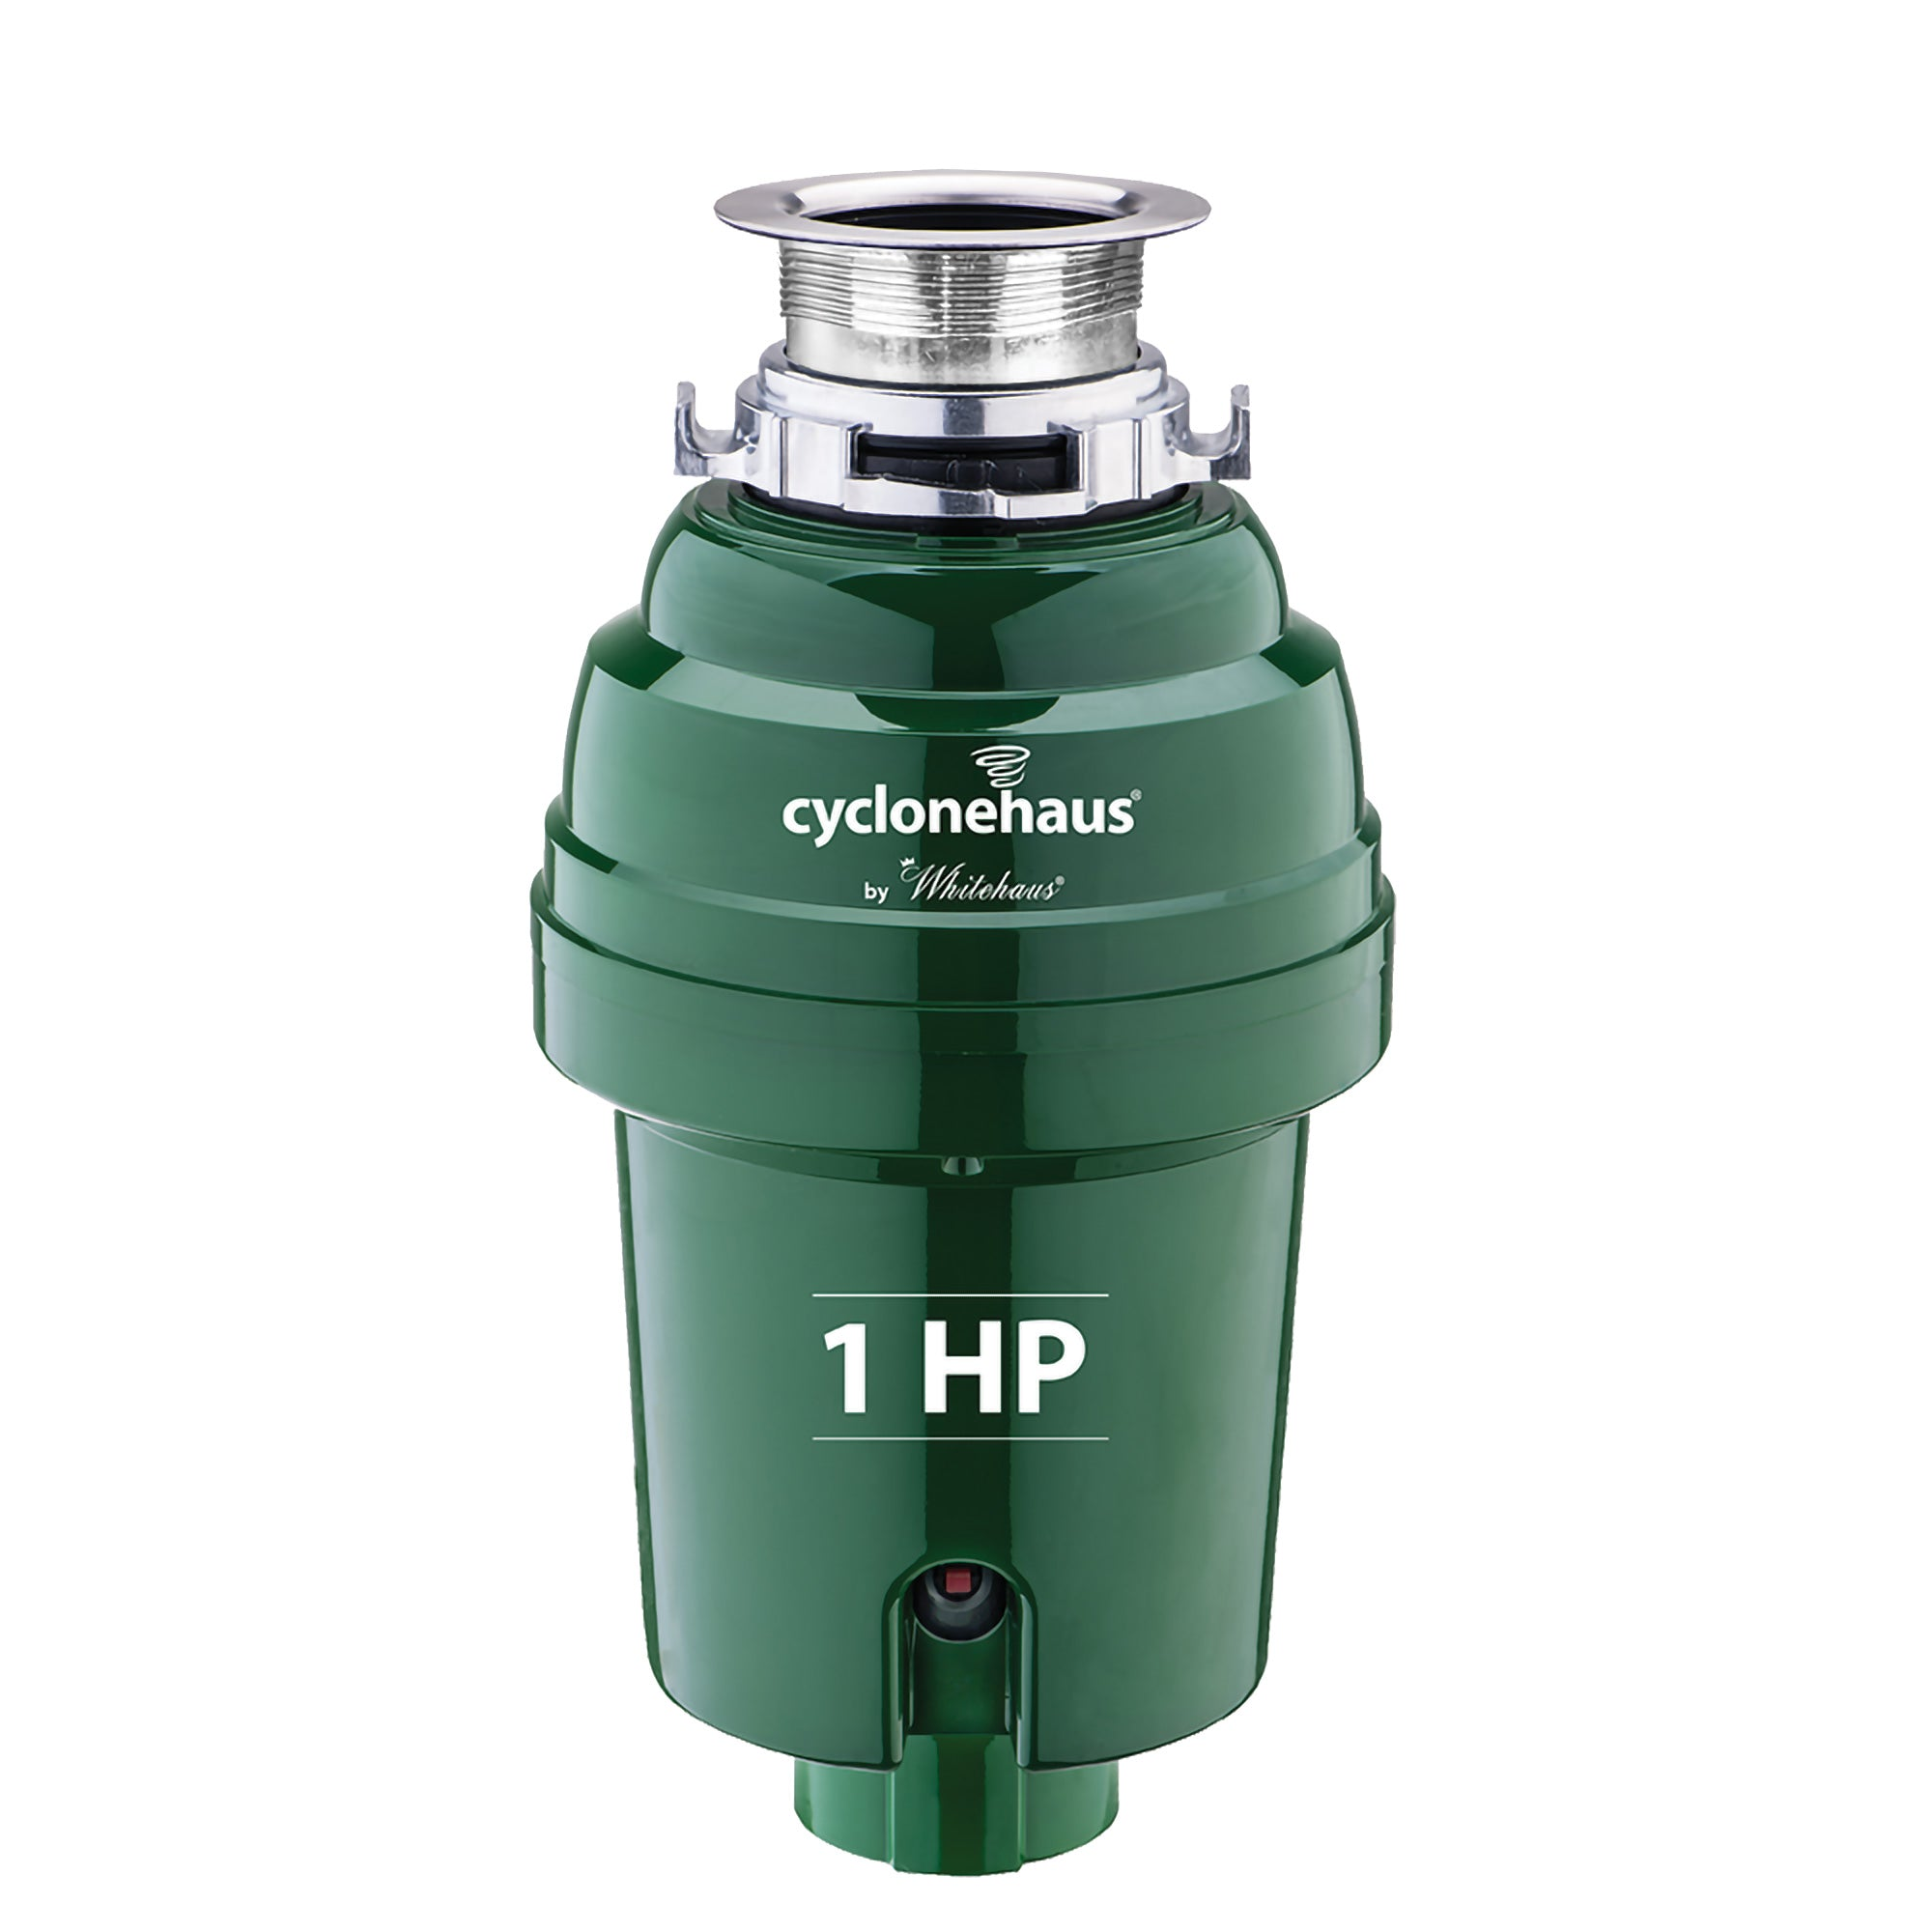 Cyclonehaus High Efficiency Garbage Disposal with Solid Brass Flange and Quiet Operation